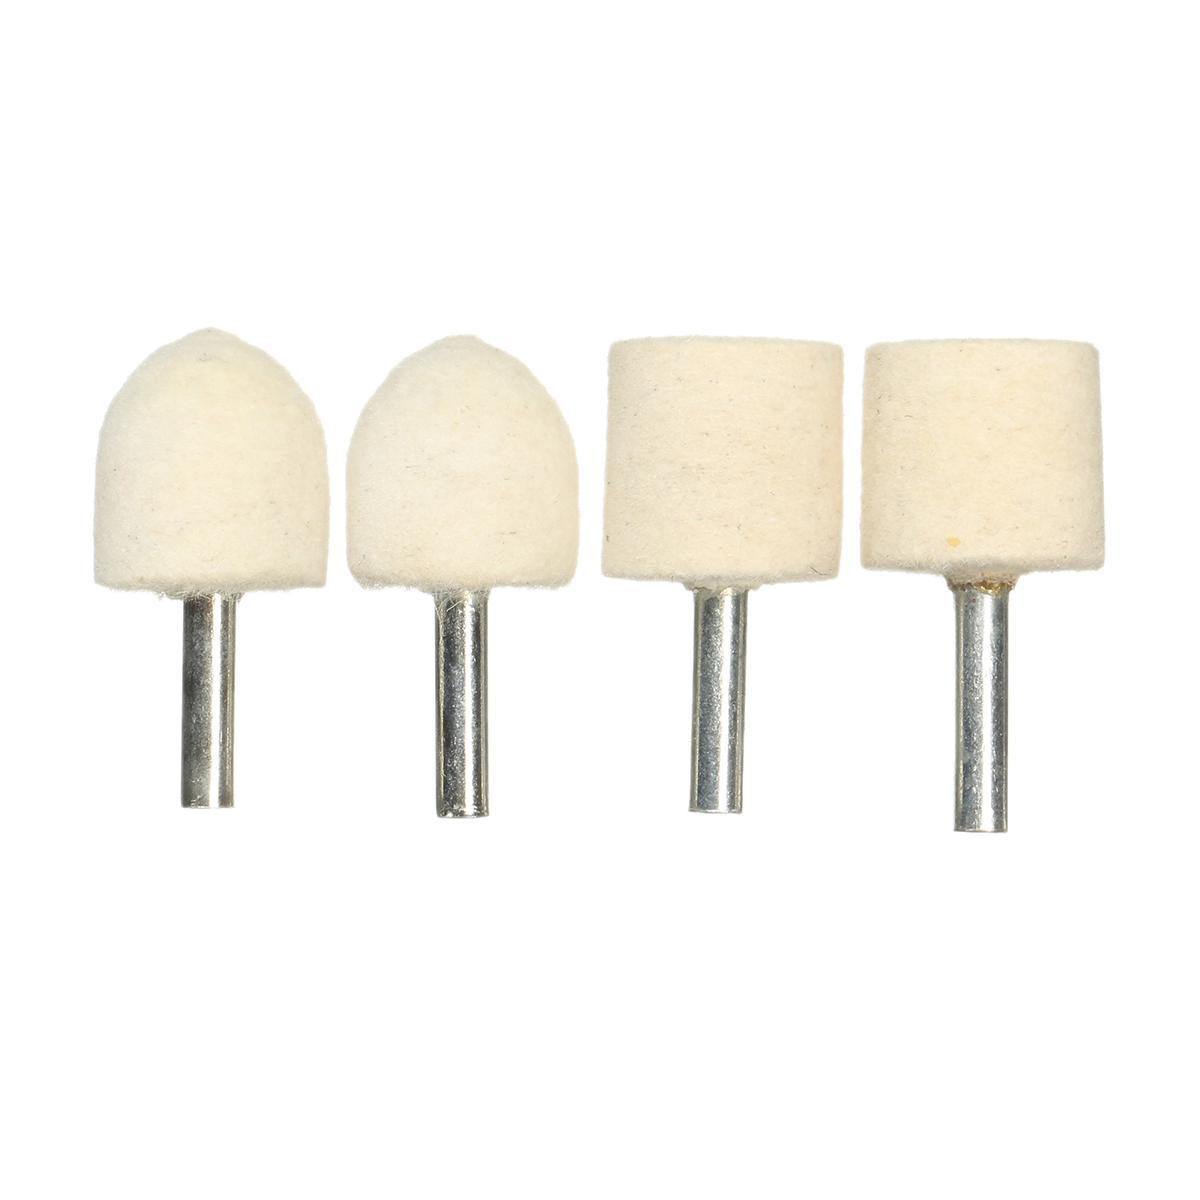 4PCS 5mm Shank Wool Felt Polishing Buffing Wheel For Grinding Grinder Tool  Kit